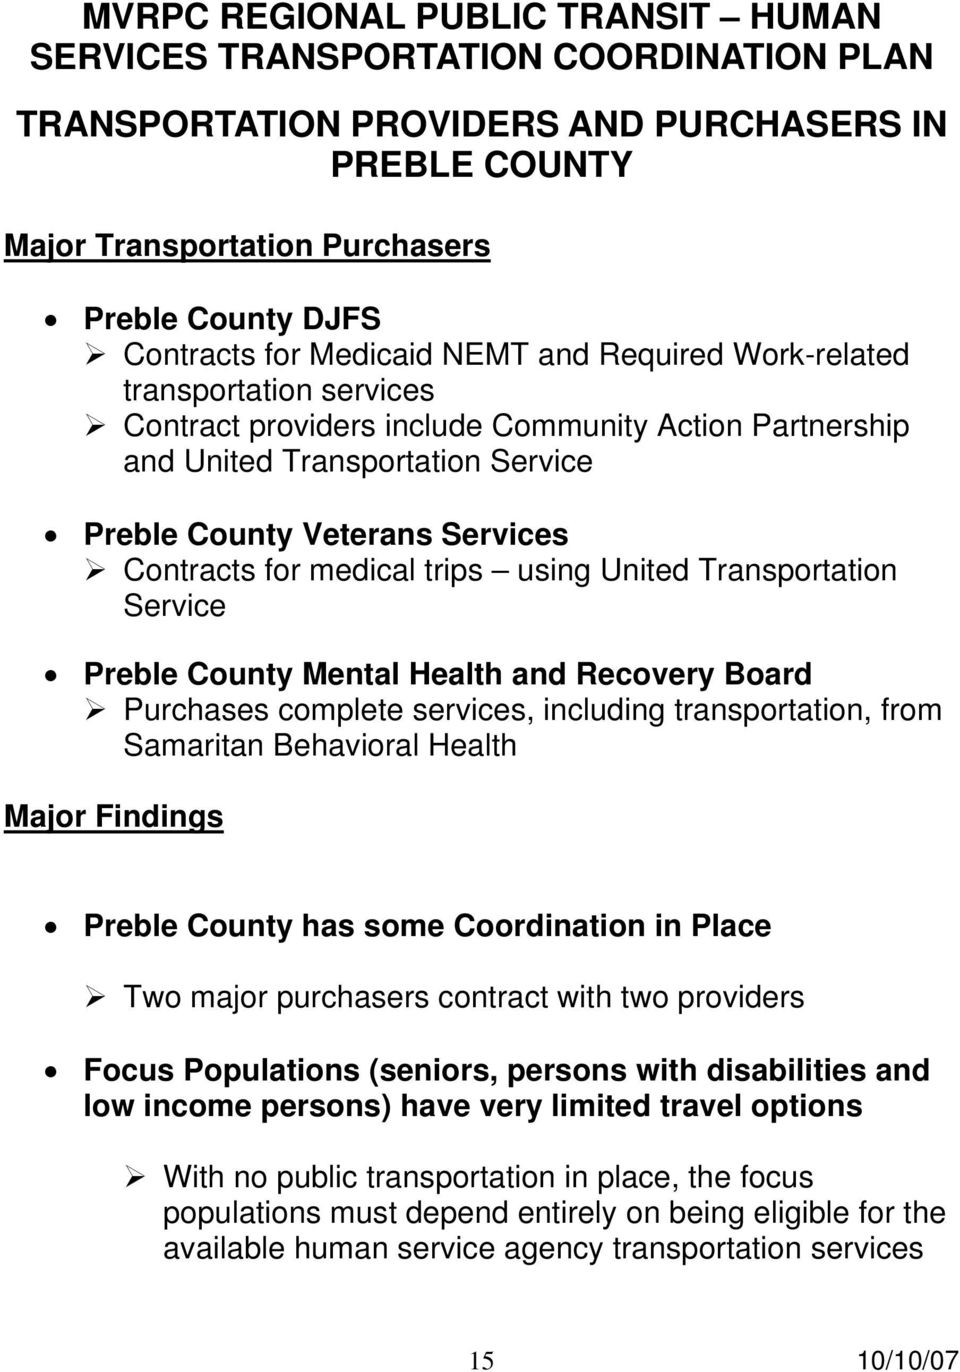 services, including transportation, from Samaritan Behavioral Health Major Findings Preble County has some Coordination in Place Two major purchasers contract with two providers Focus Populations